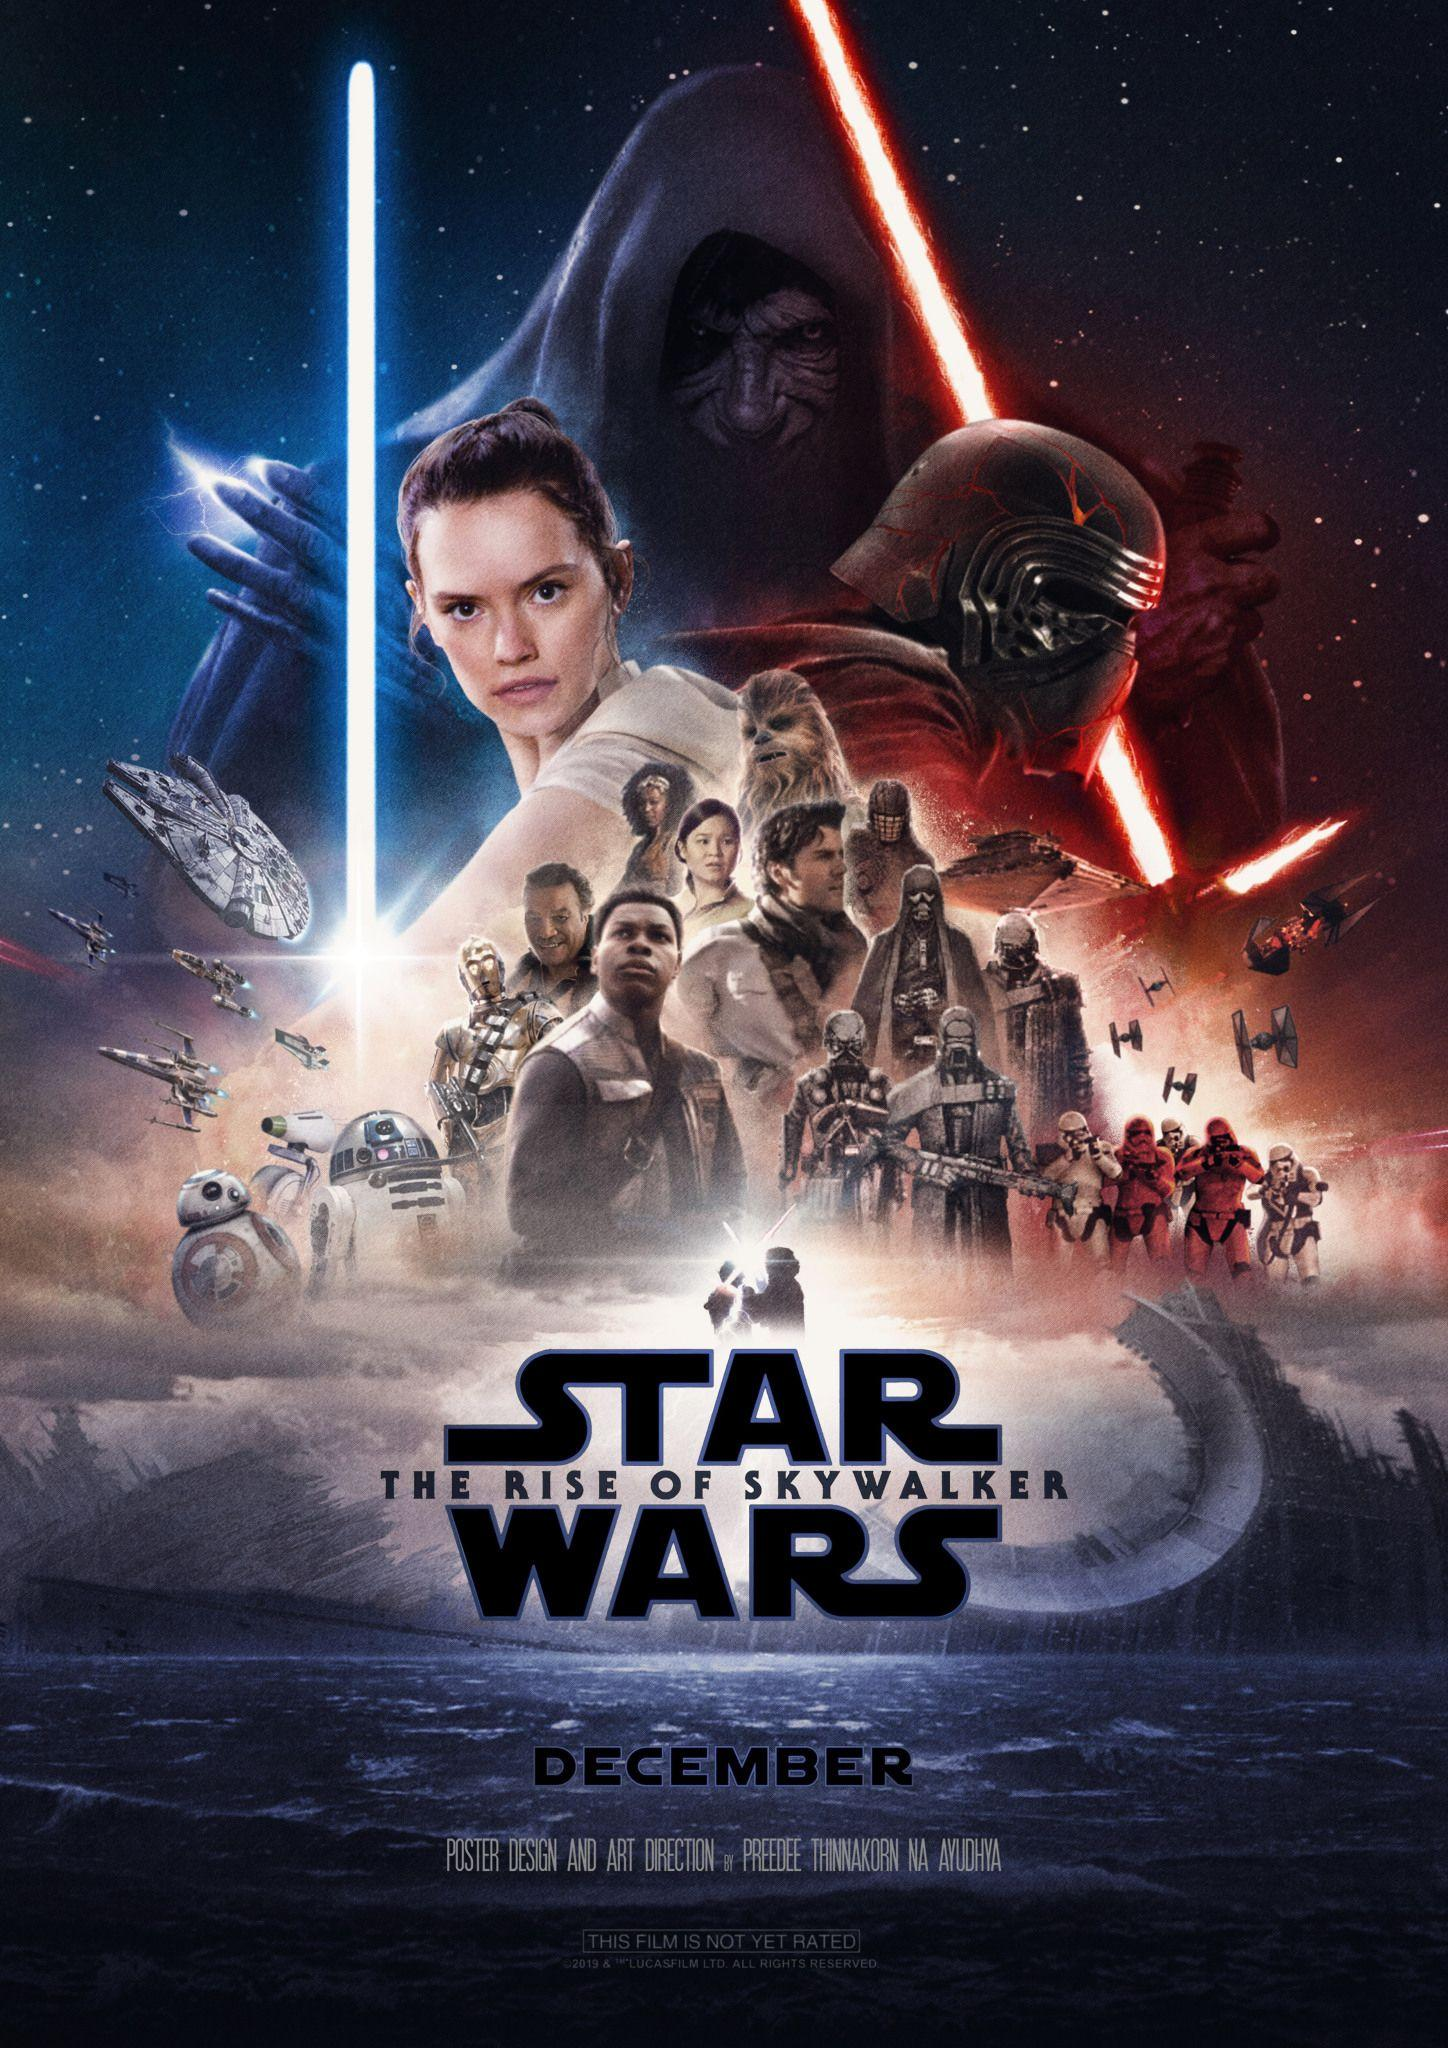 Star Wars The Rise Of Skywalker Movie 2019 Wallpapers Wallpaper Cave